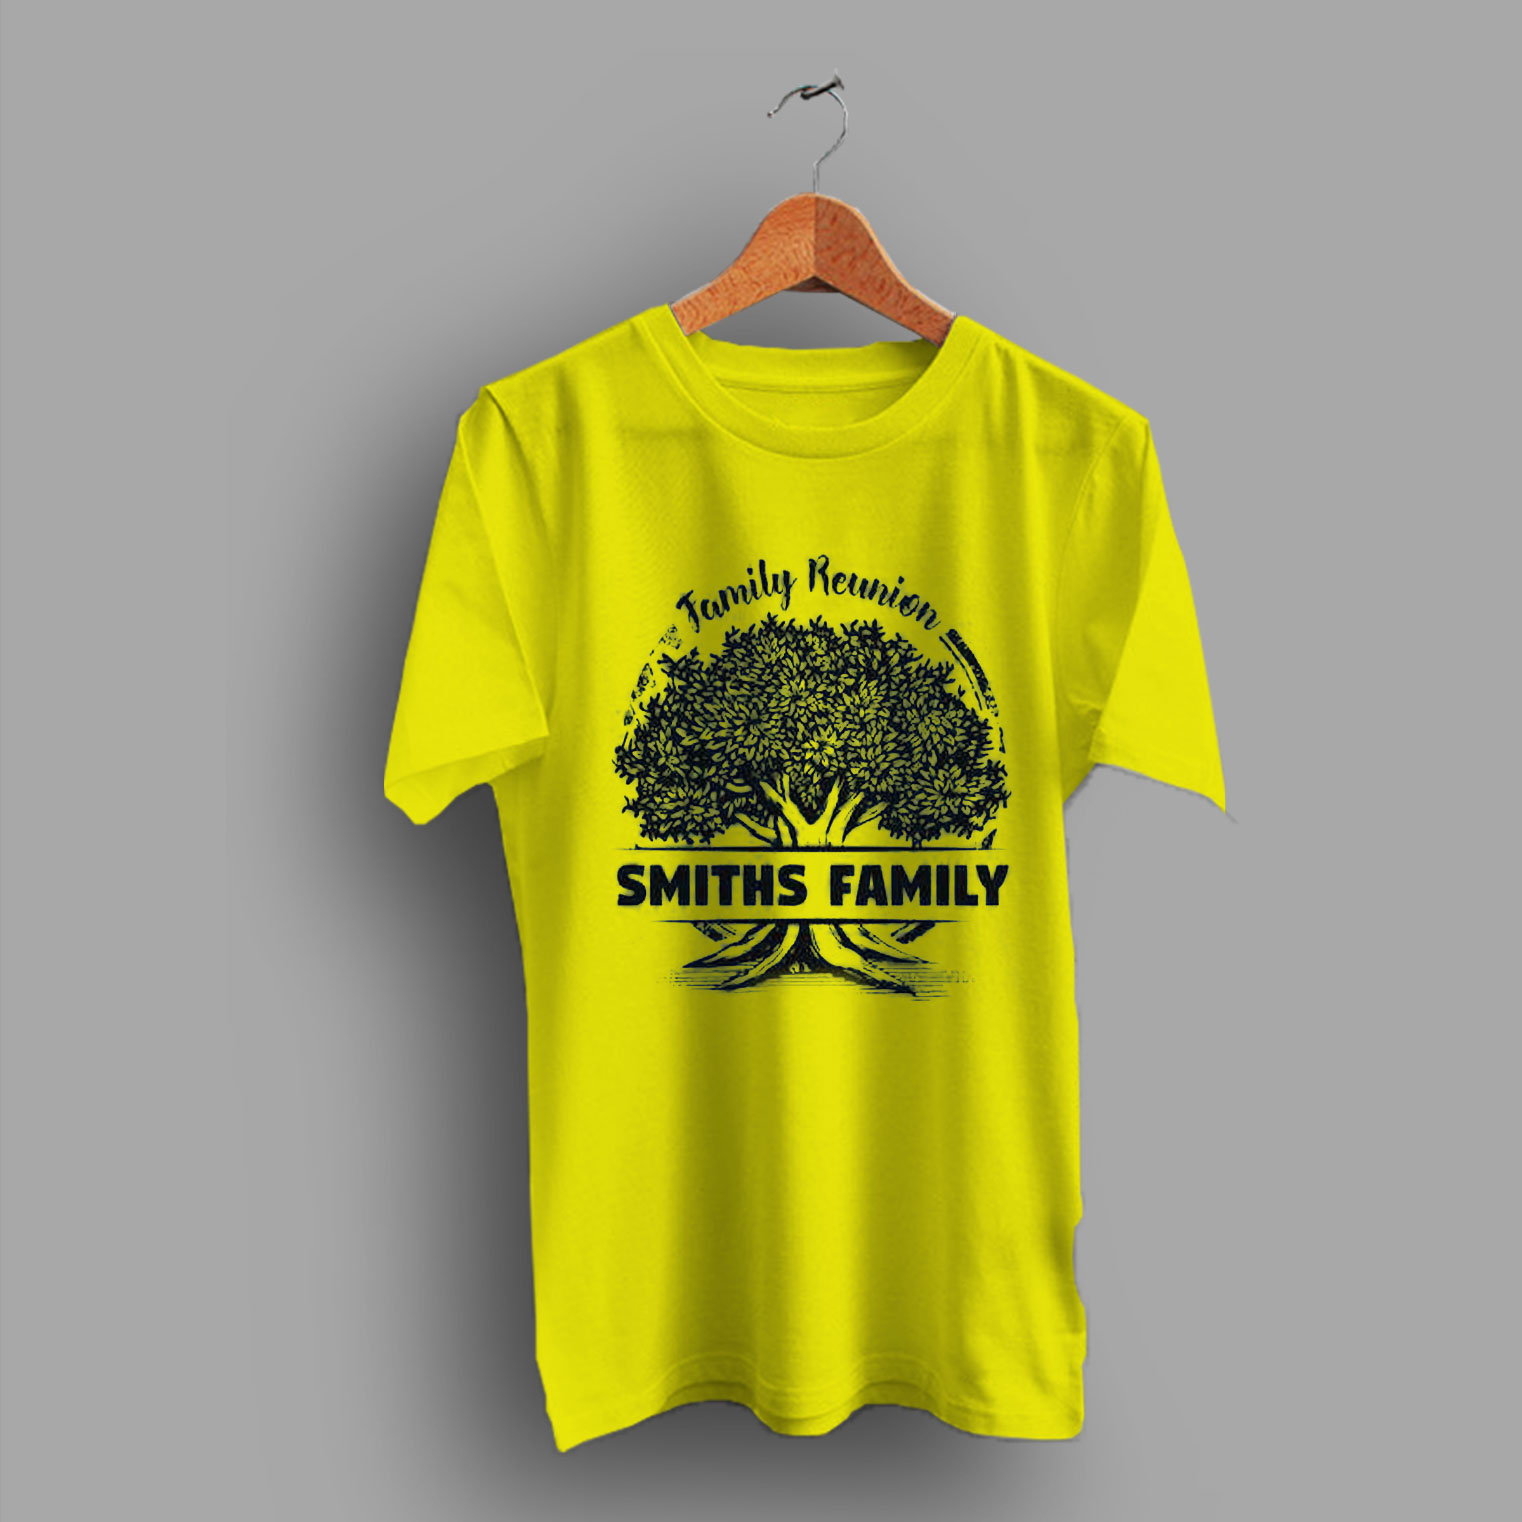 241d2805d3 Pictures Of Family Reunion T Shirts – EDGE Engineering and ...